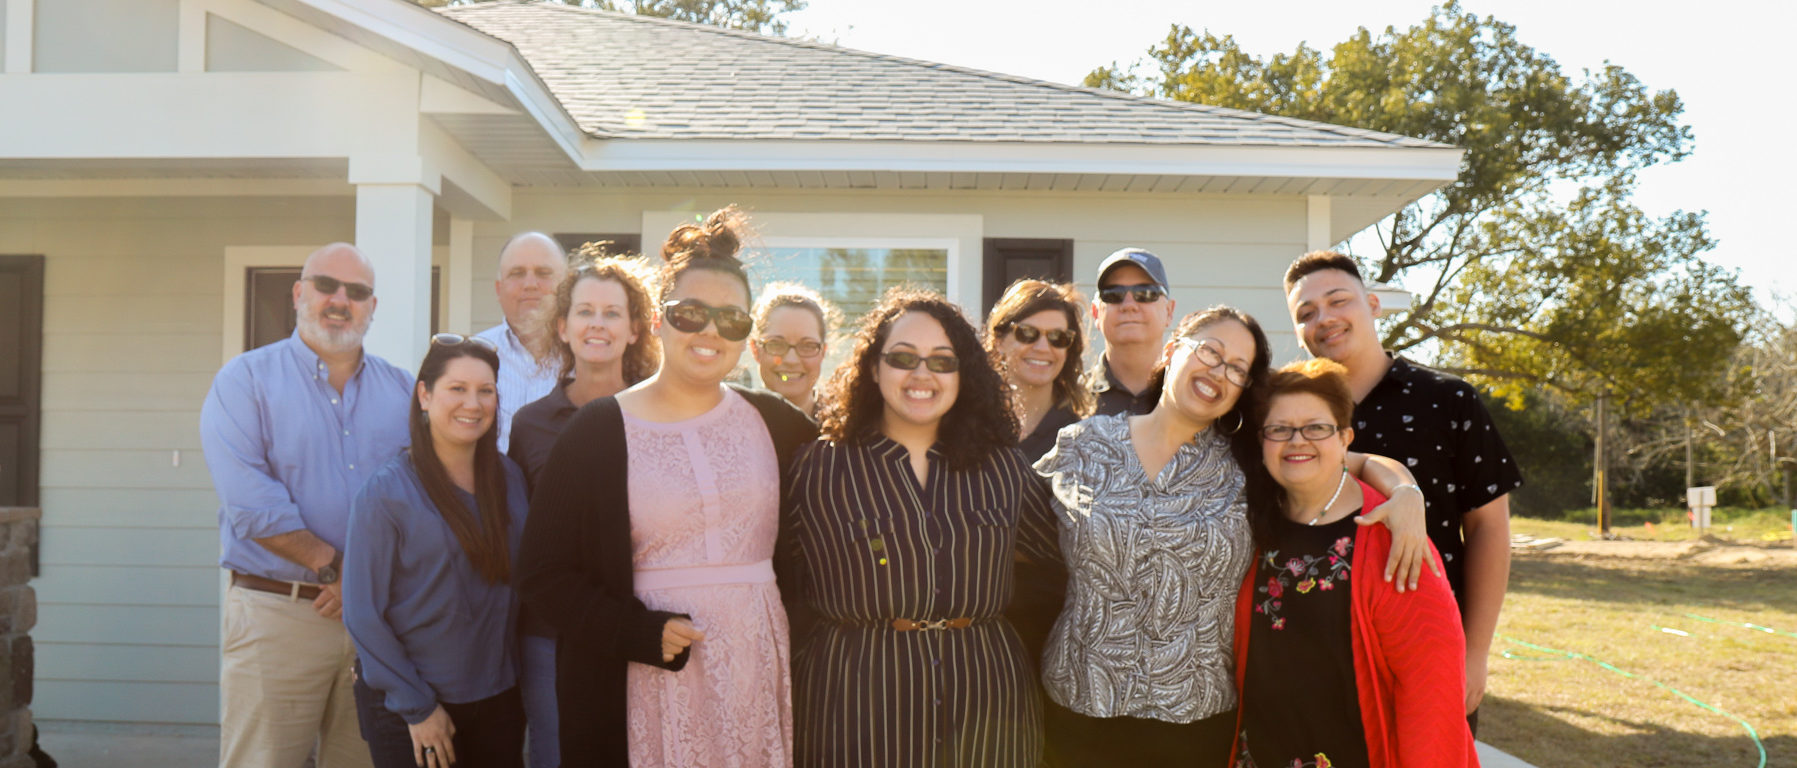 Large group of people with family in front and group of K. Hovnanian team members behind them, all in standing in front of newly completed house